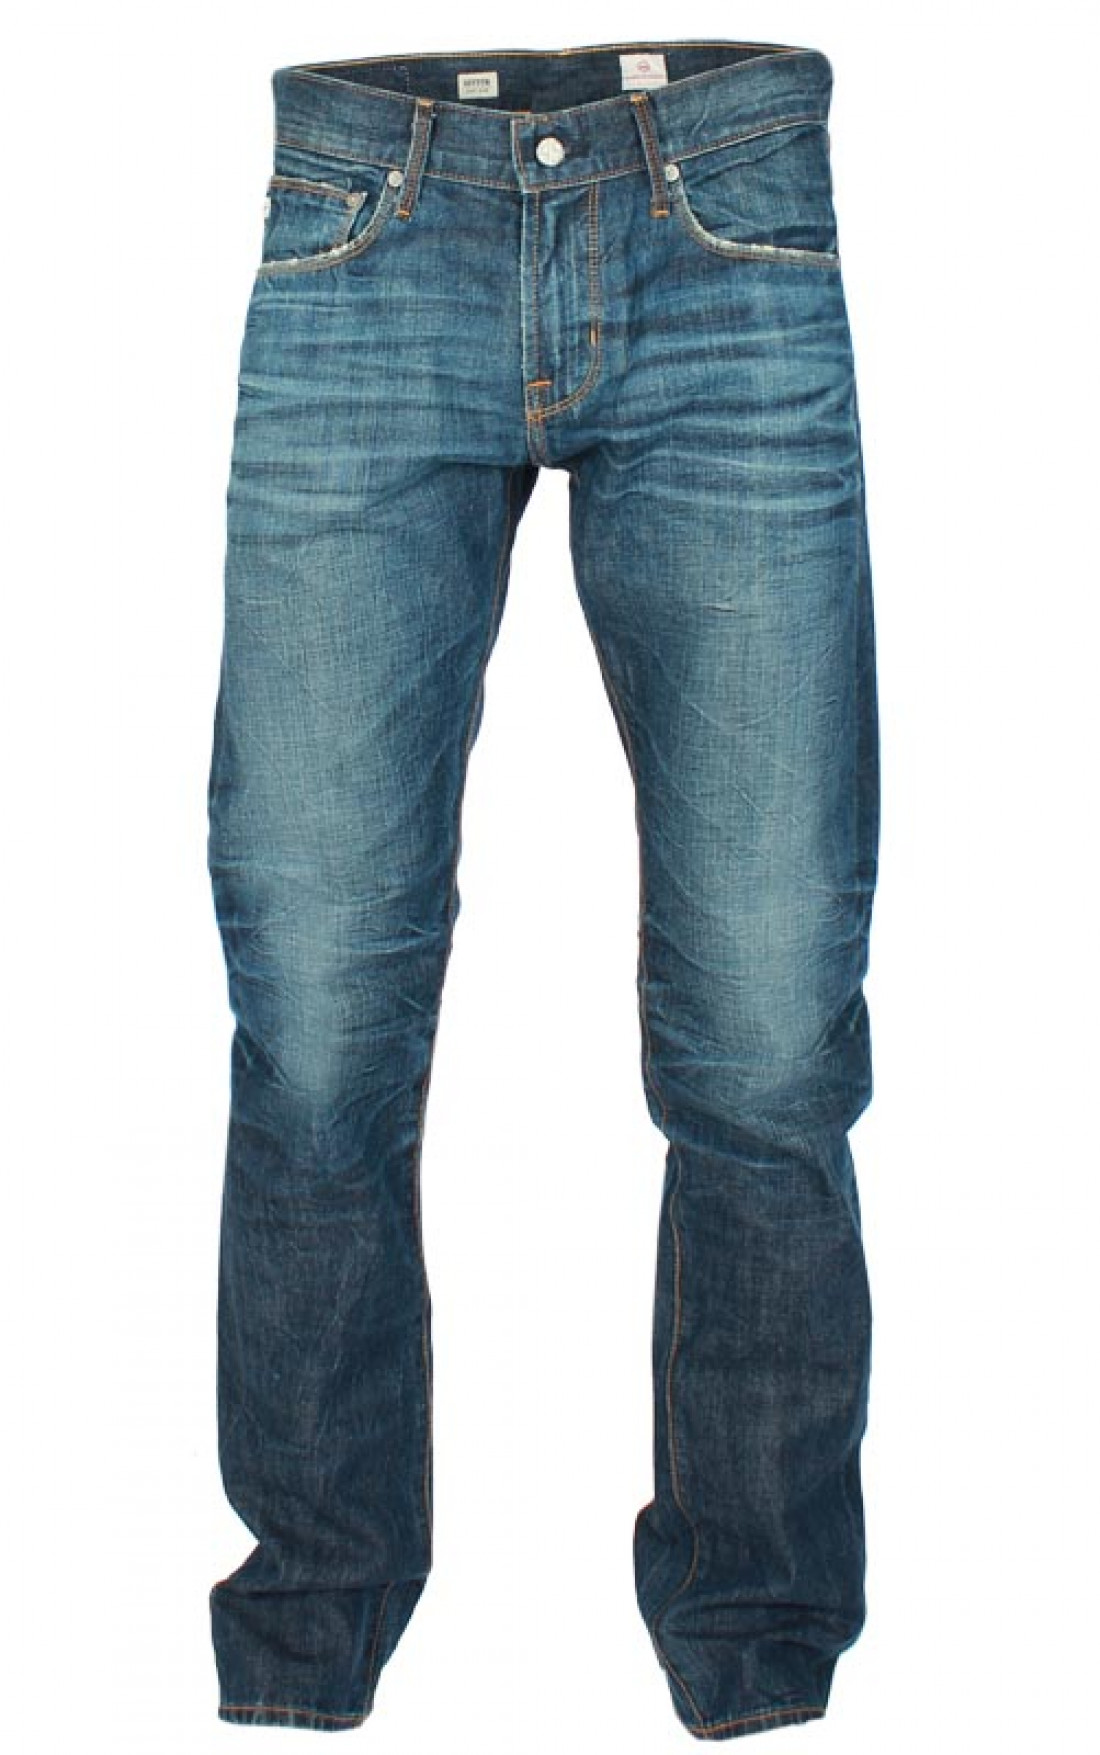 Adriano-Goldschmied-Mens-Straight-Leg-Geffen-Dark-Blue-Jeans-Boudi-UK